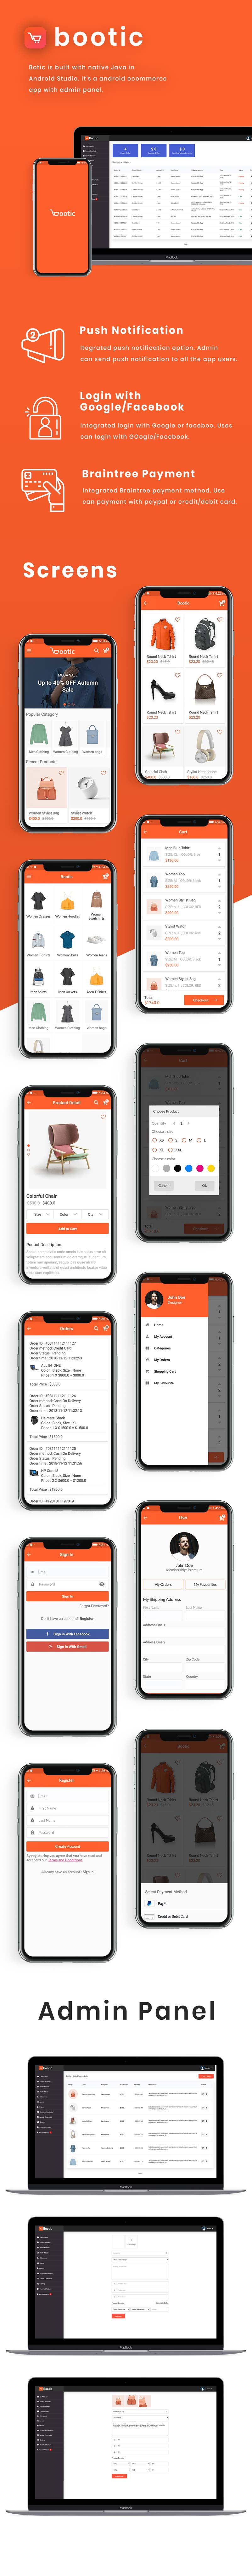 Bootic Full - An android eCommerce app with admin panel - 3